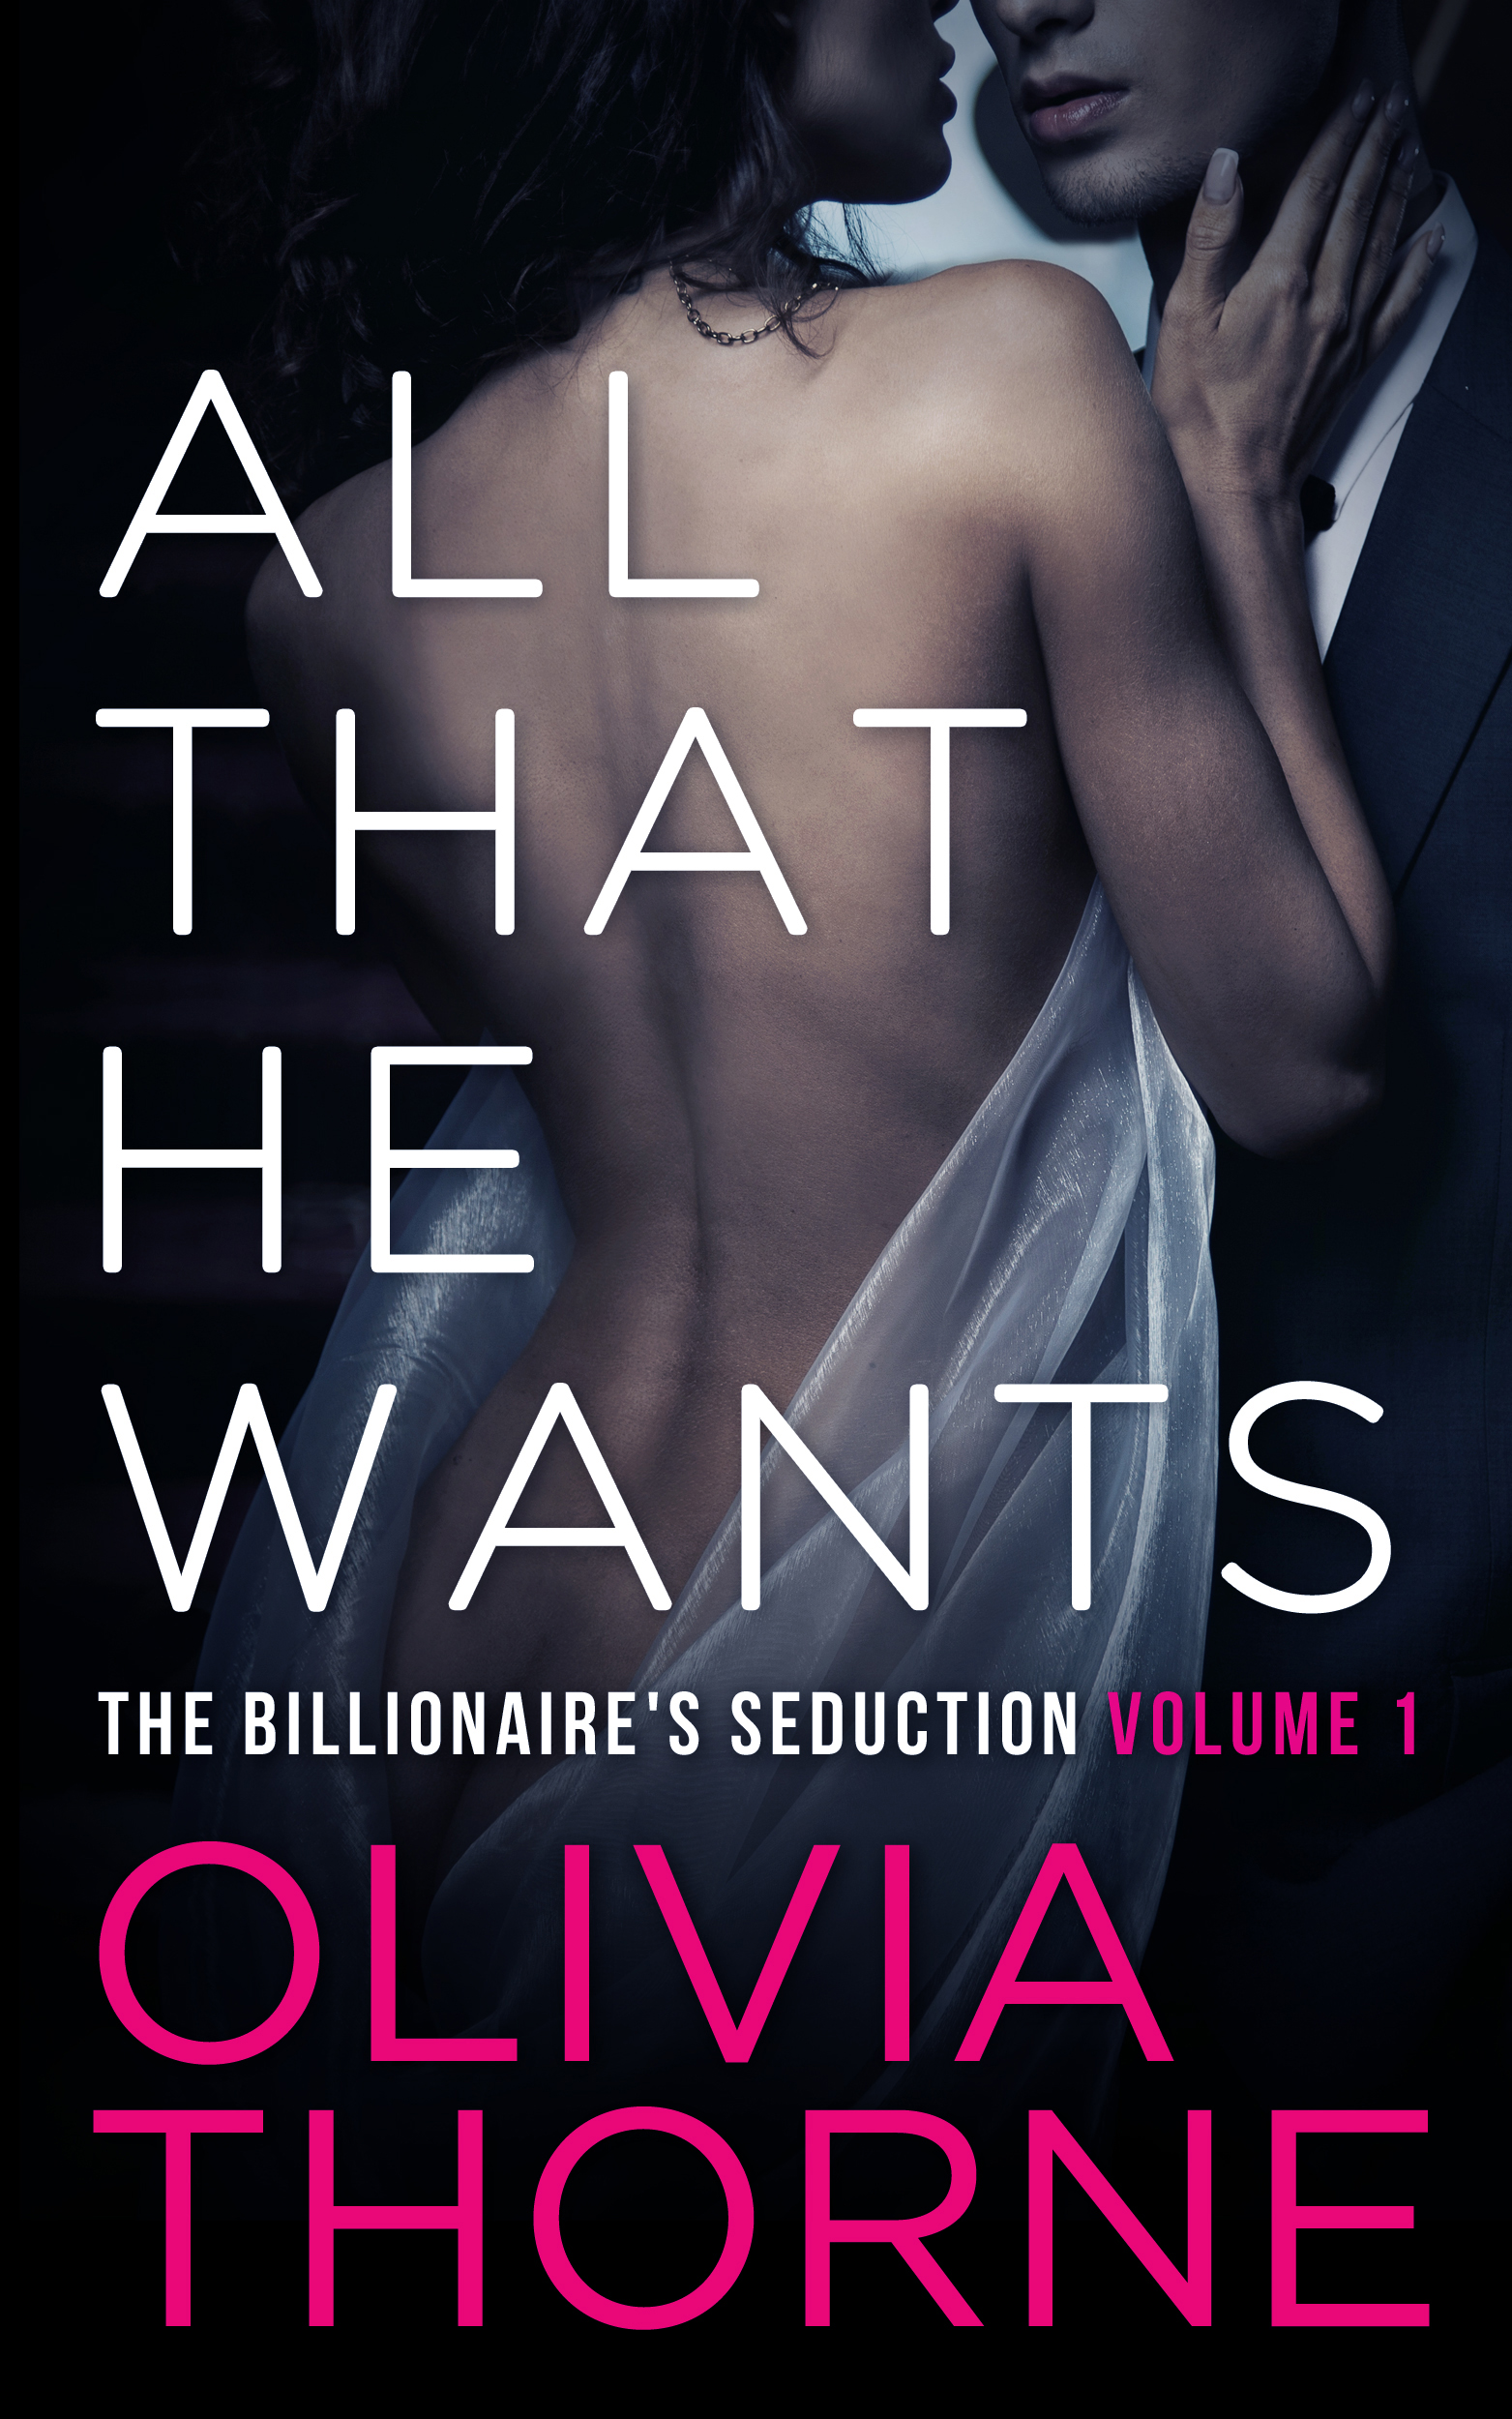 Olivia Thorne - All That He Wants (The Billionaire's Seduction Volume 1)